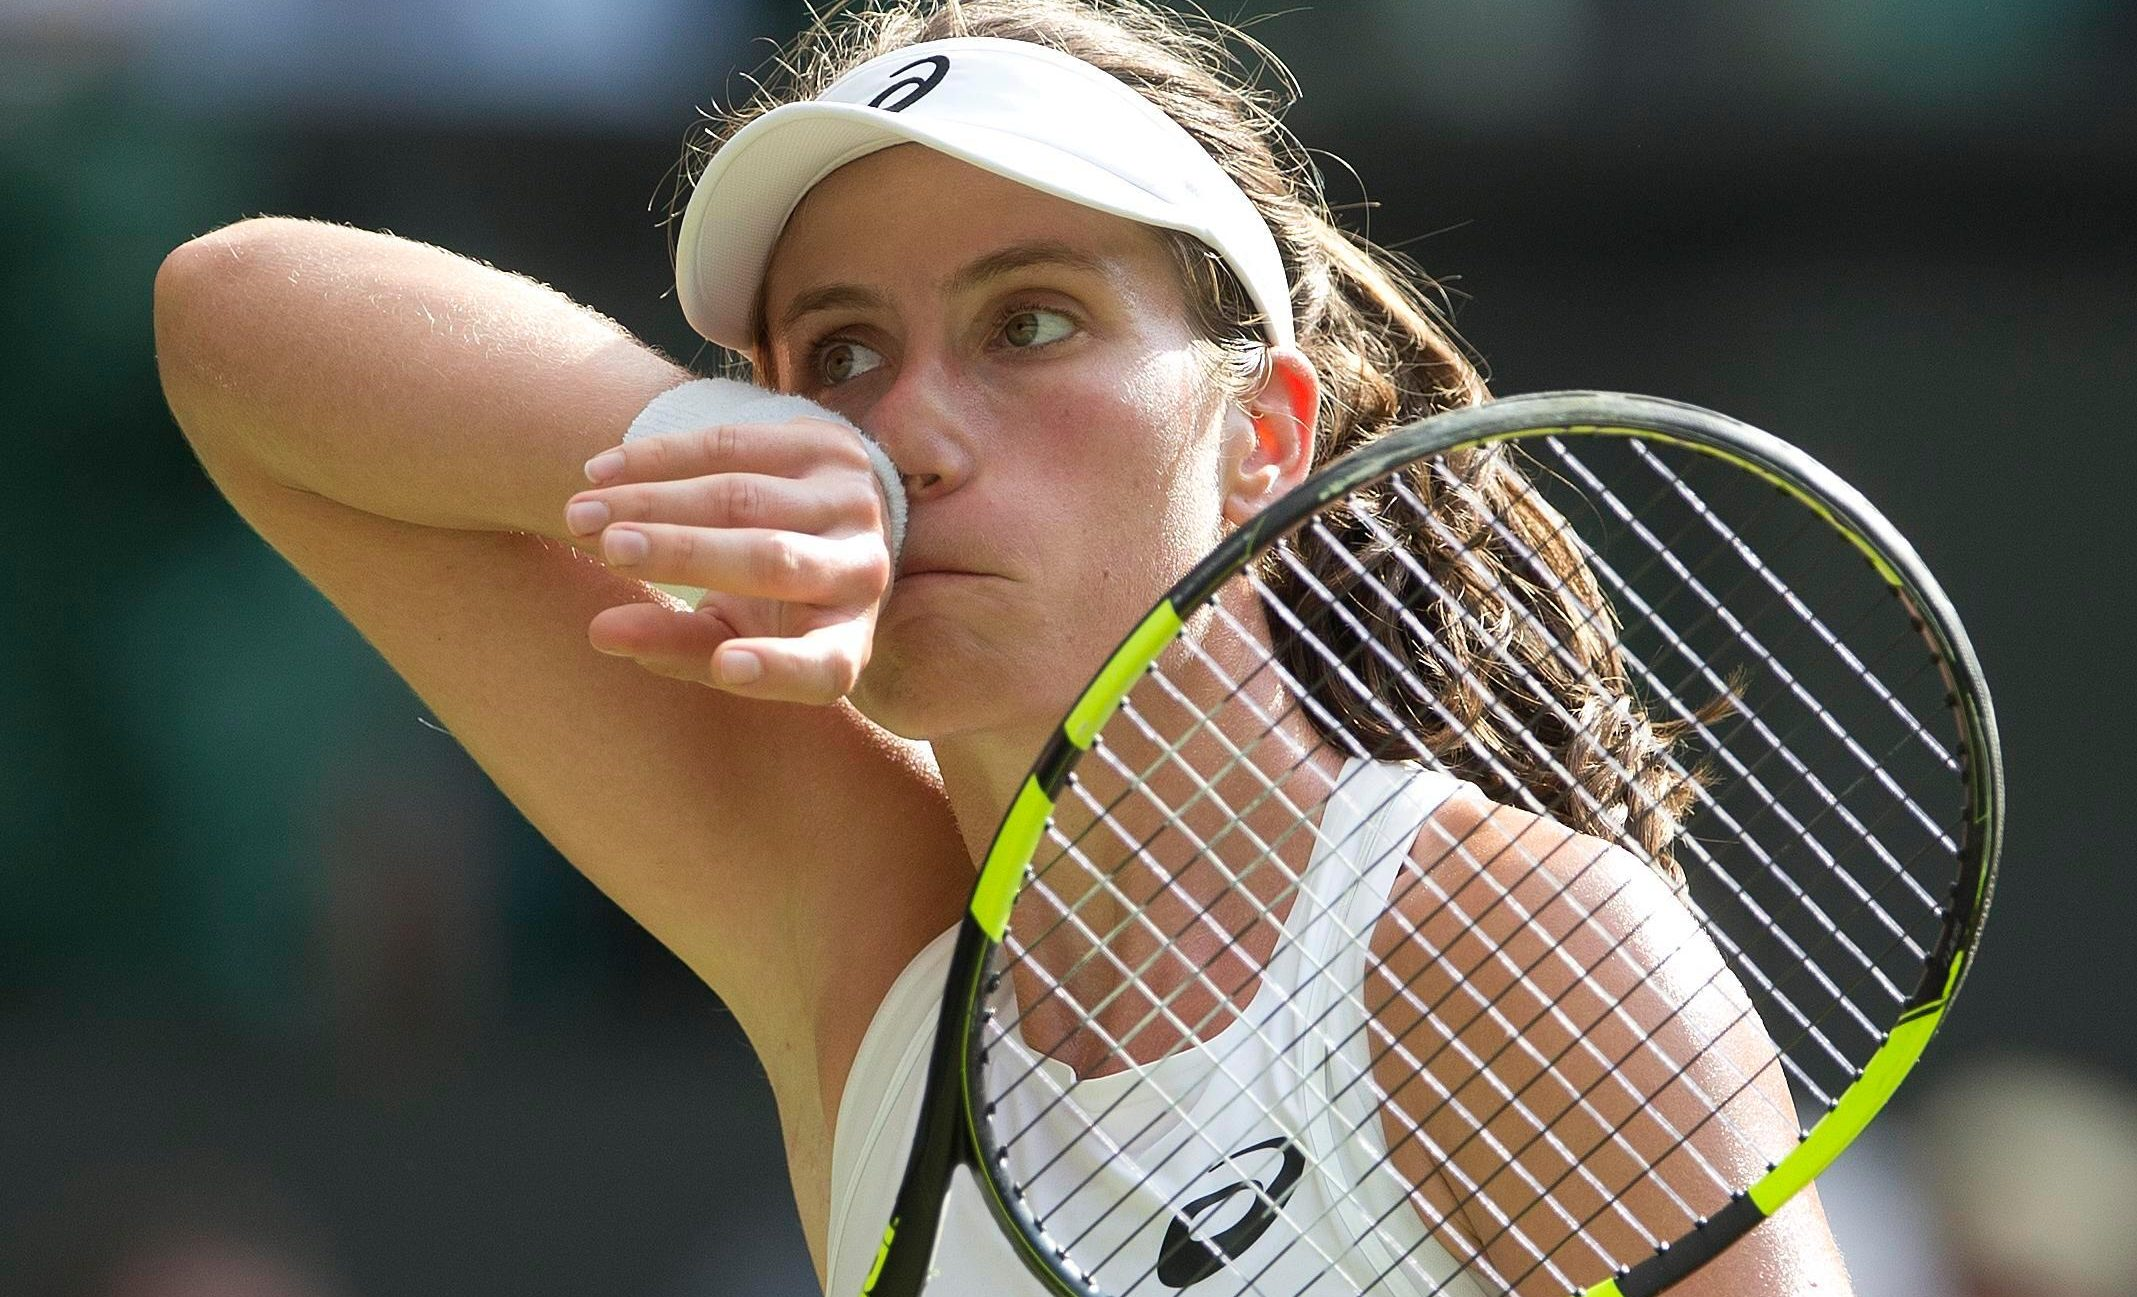 Jo Konta made the semi-finals last year but could not manage a repeat performance